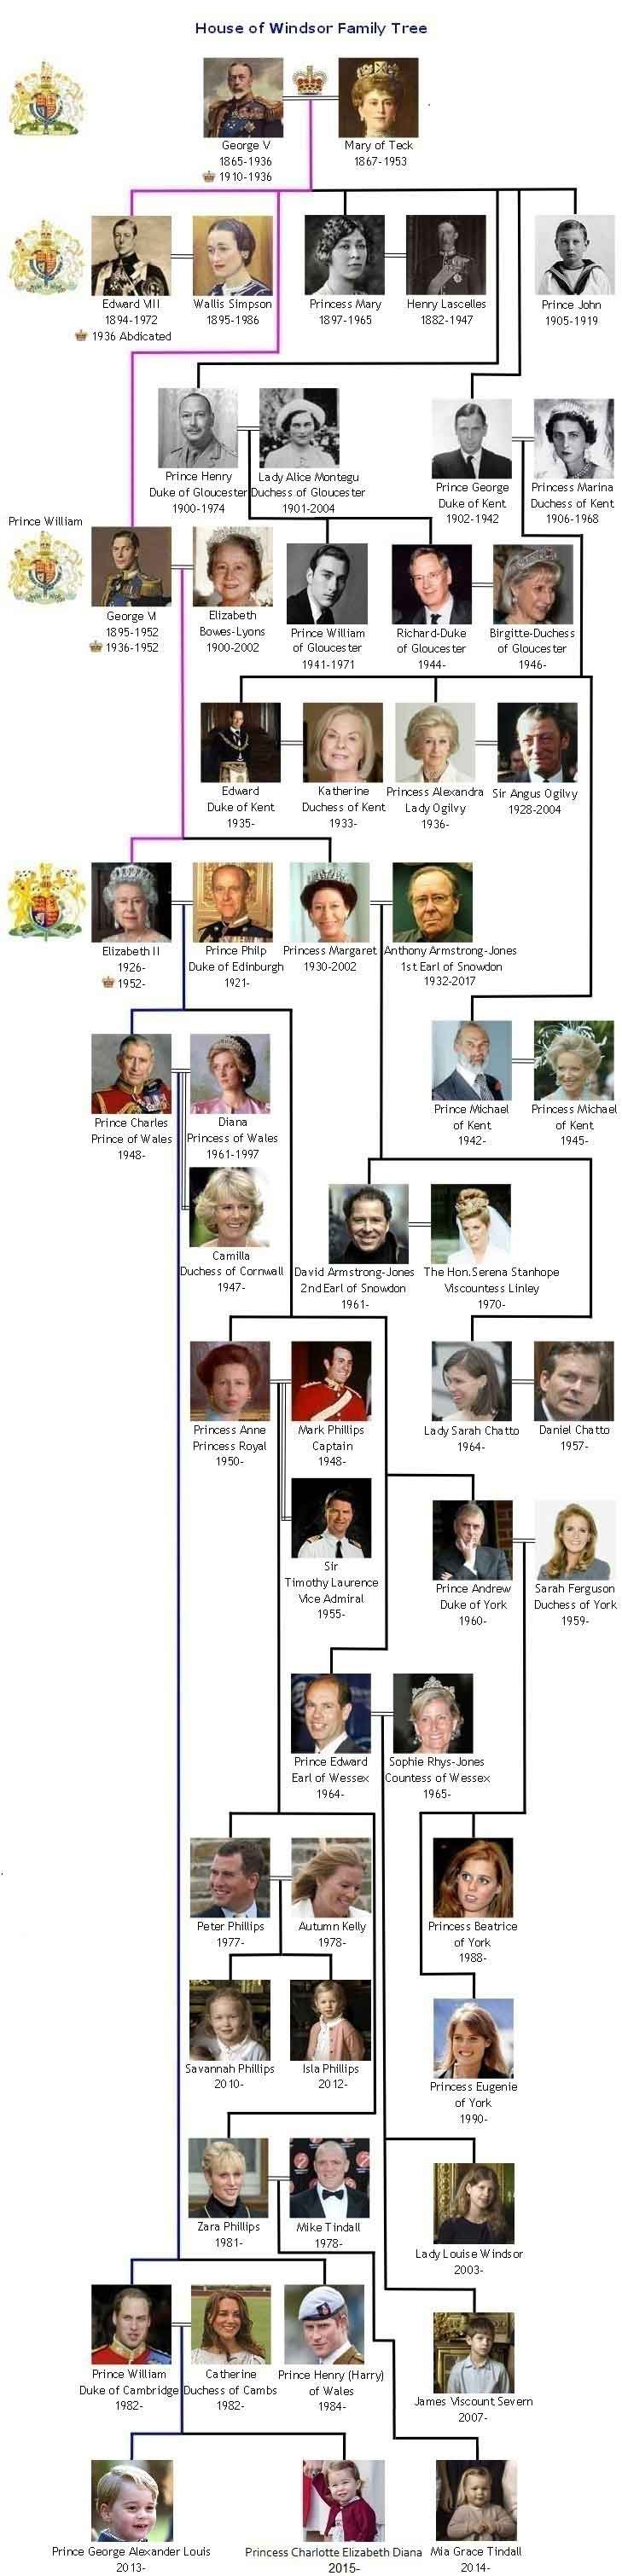 The House of Windsor British Royal Family Tree